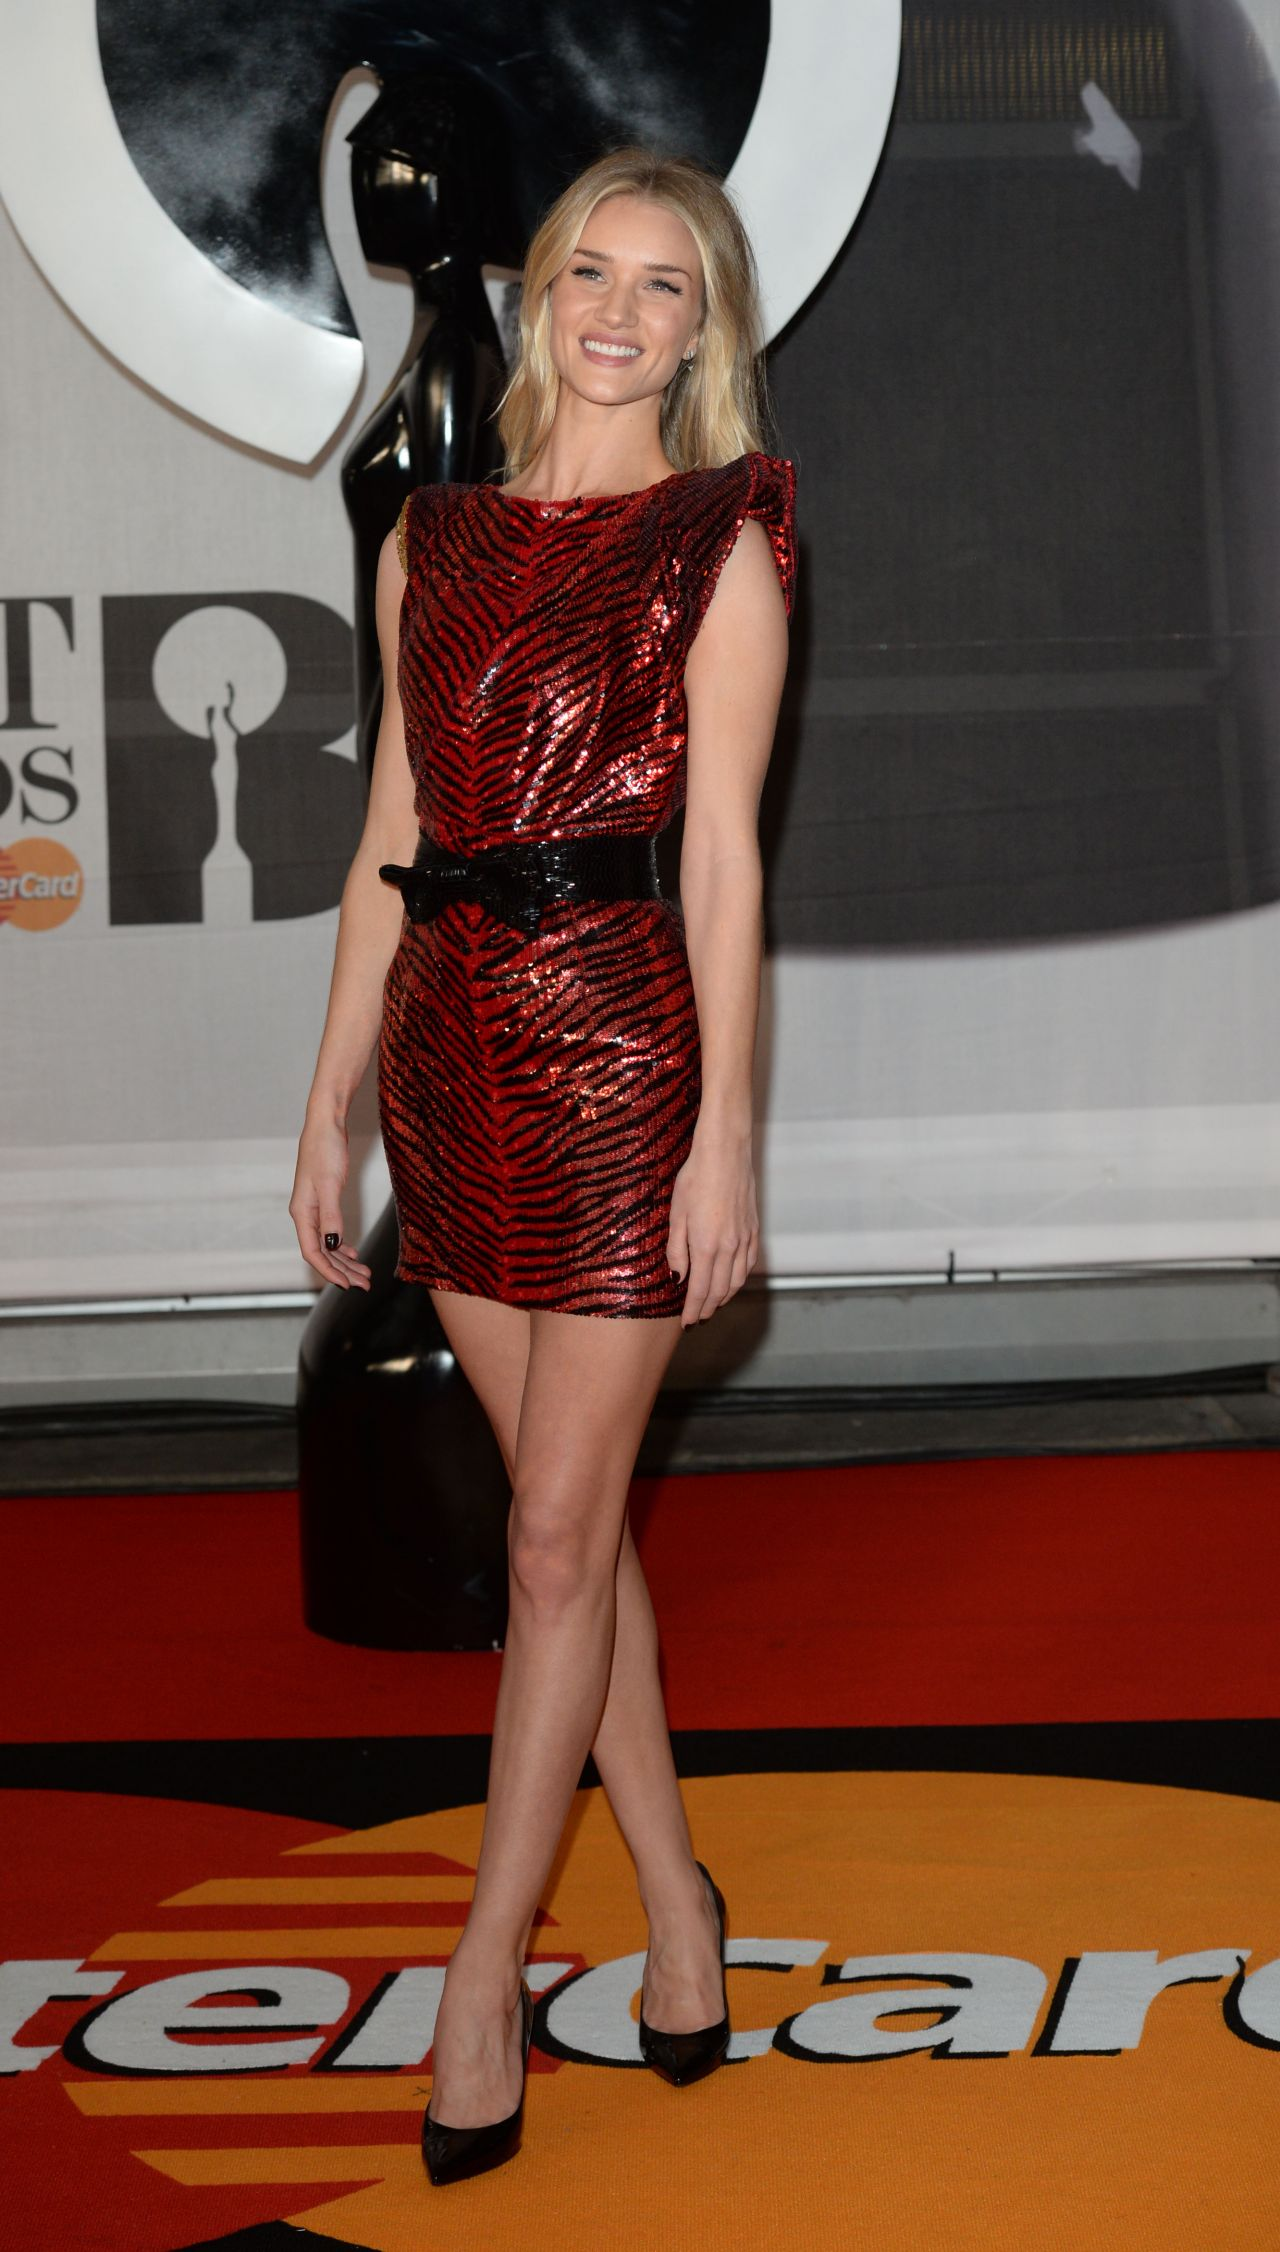 Rosie Huntington-Whiteley Wearing Saint Laurent Mini Dress – 2014 BRIT Awards